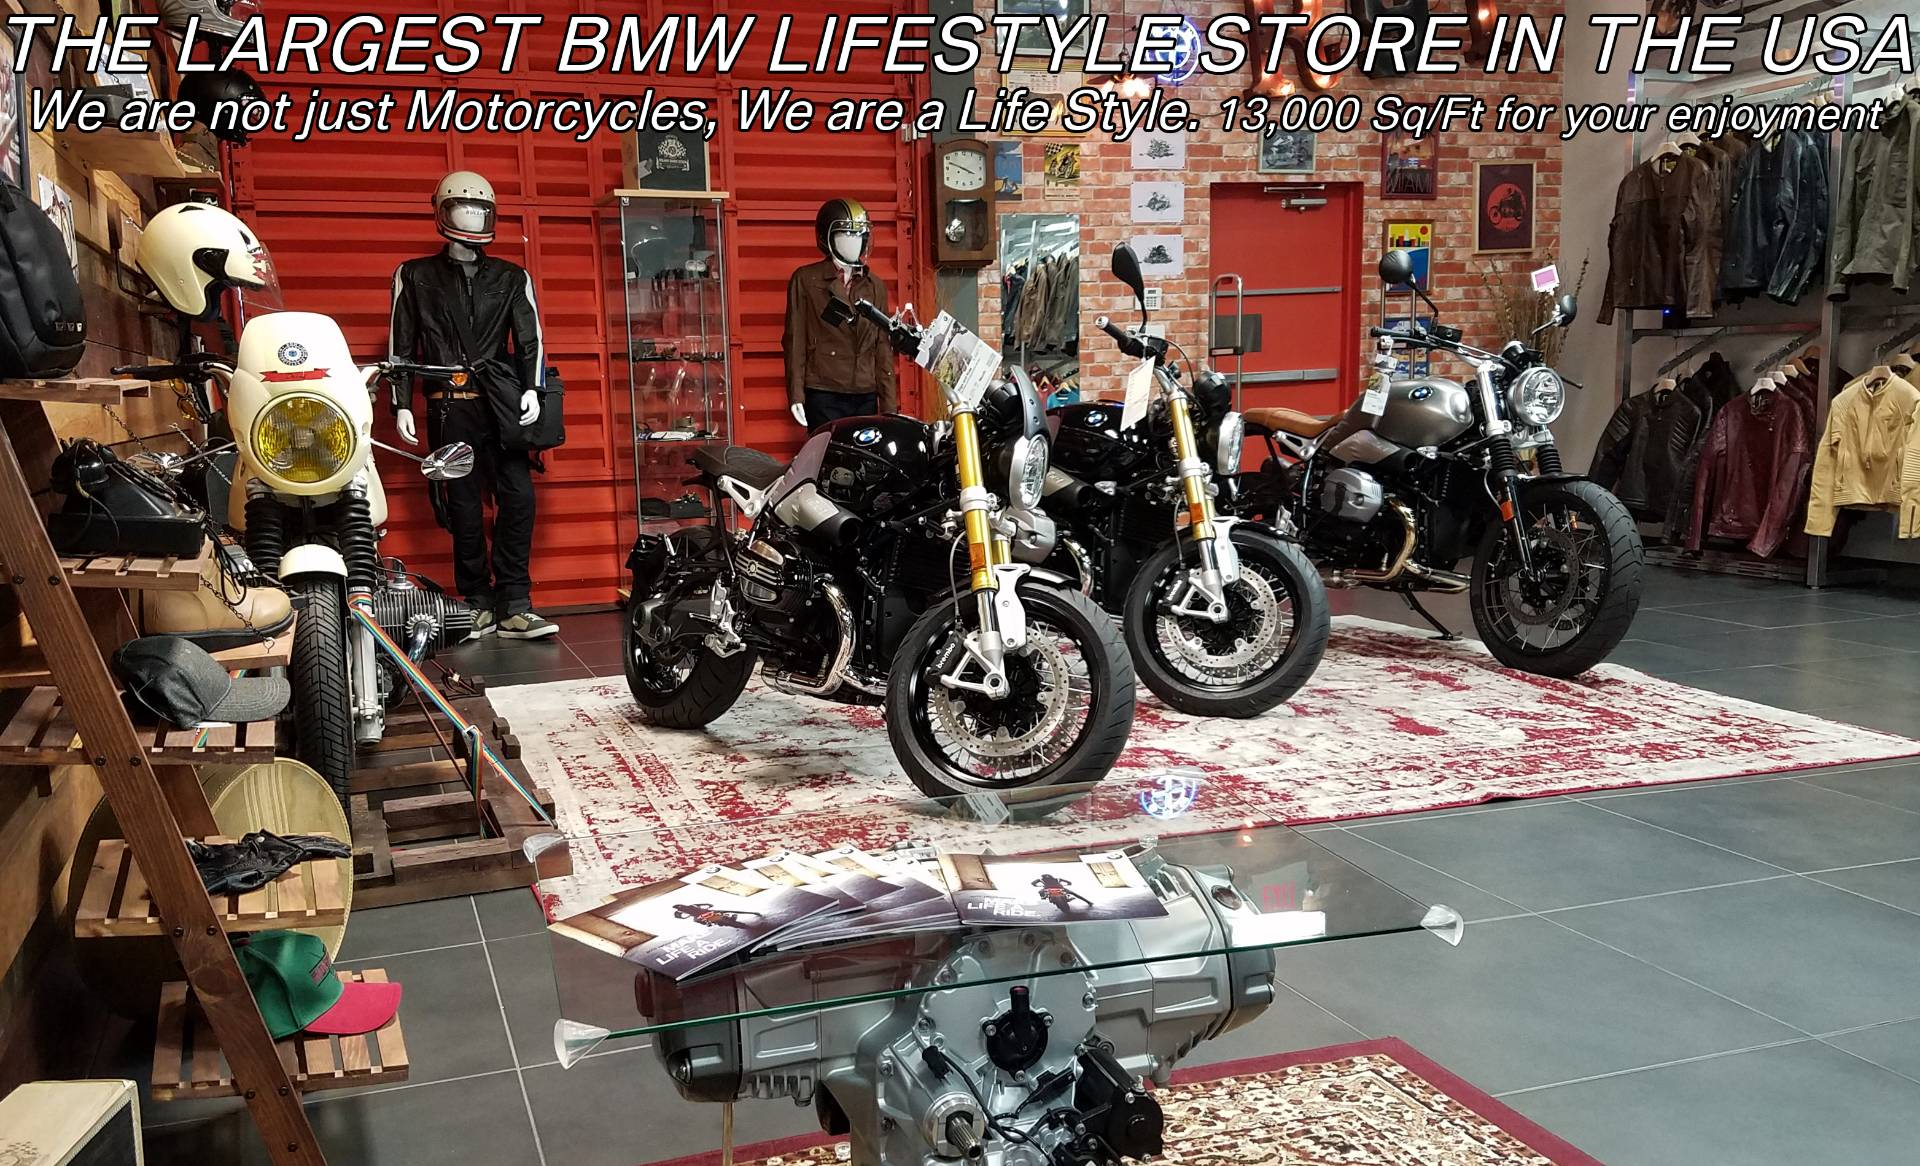 BMW Motorcycles of Miami, Motorcycles of Miami, Motorcycles Miami, New Motorcycles, Used Motorcycles, pre-owned. #BMWMotorcyclesOfMiami #MotorcyclesOfMiami. - Photo 15